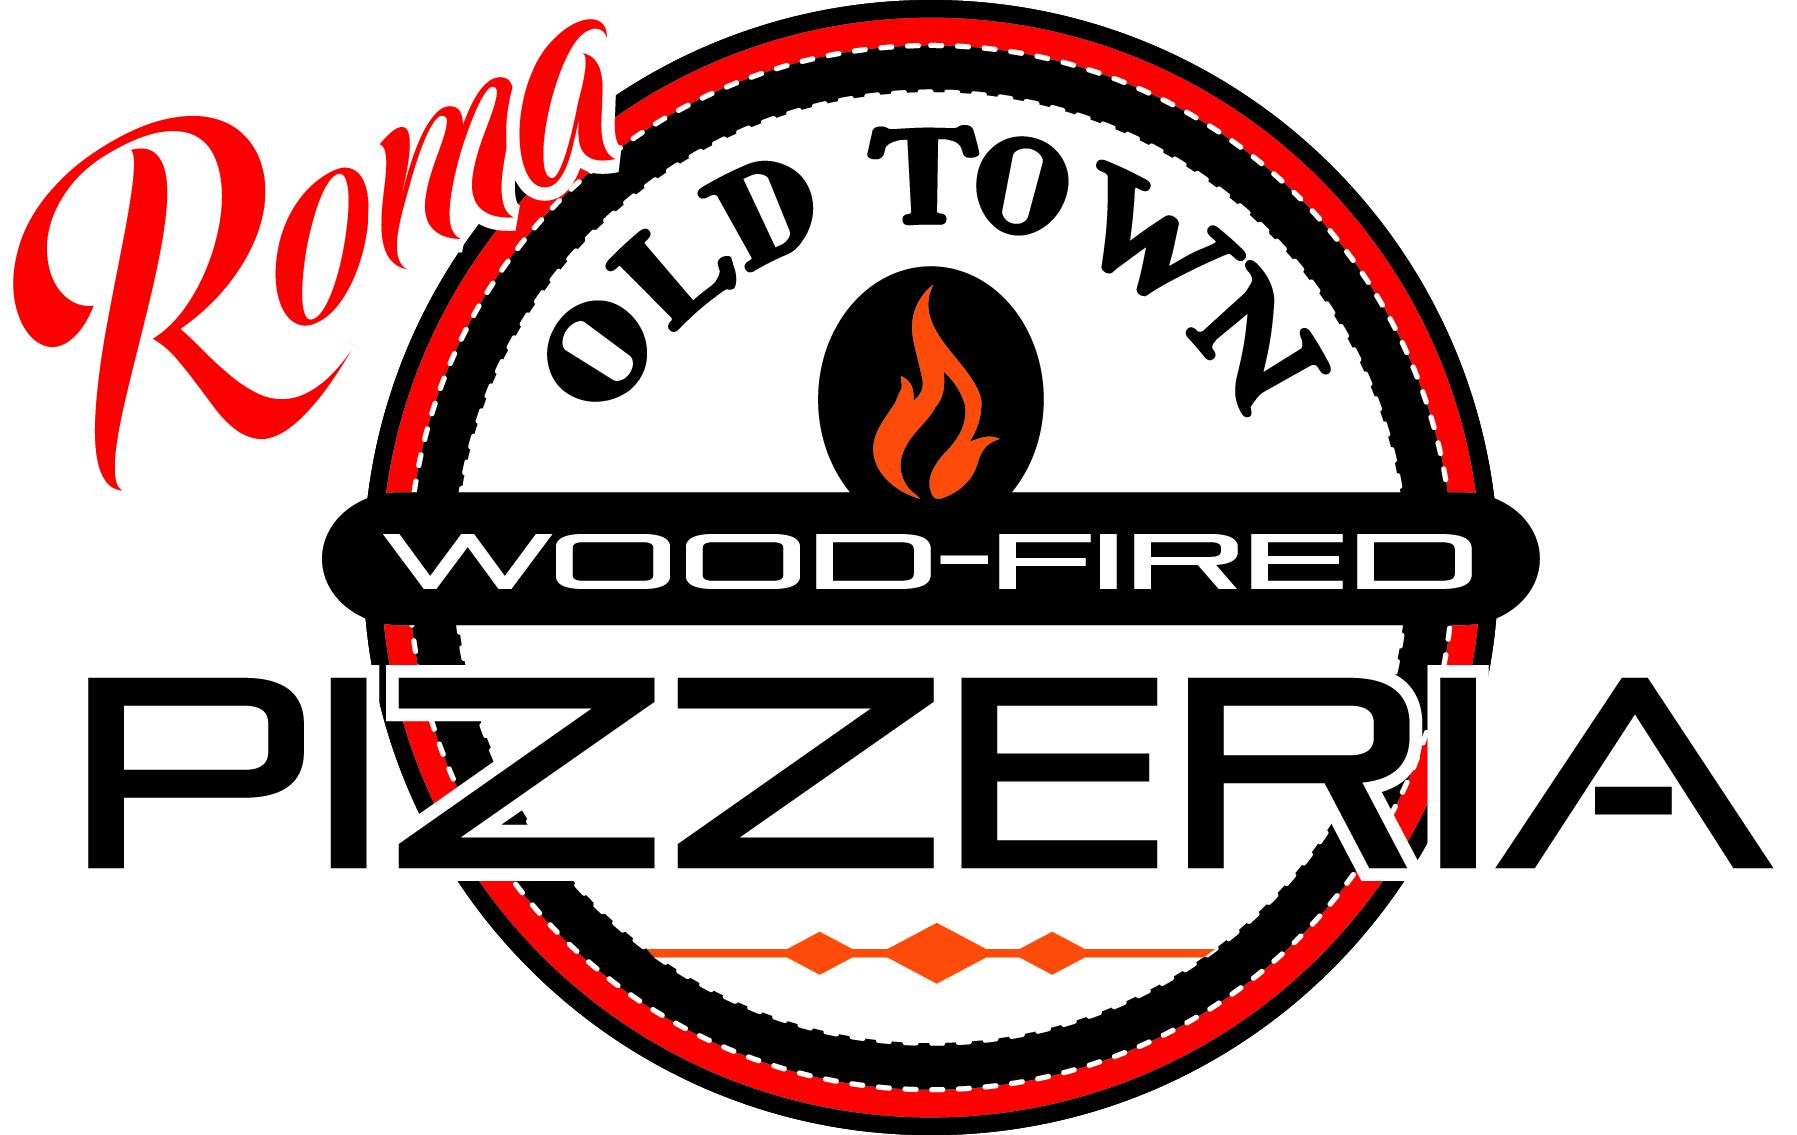 Roma Old Town Wood-Fired Pizzeria Logo